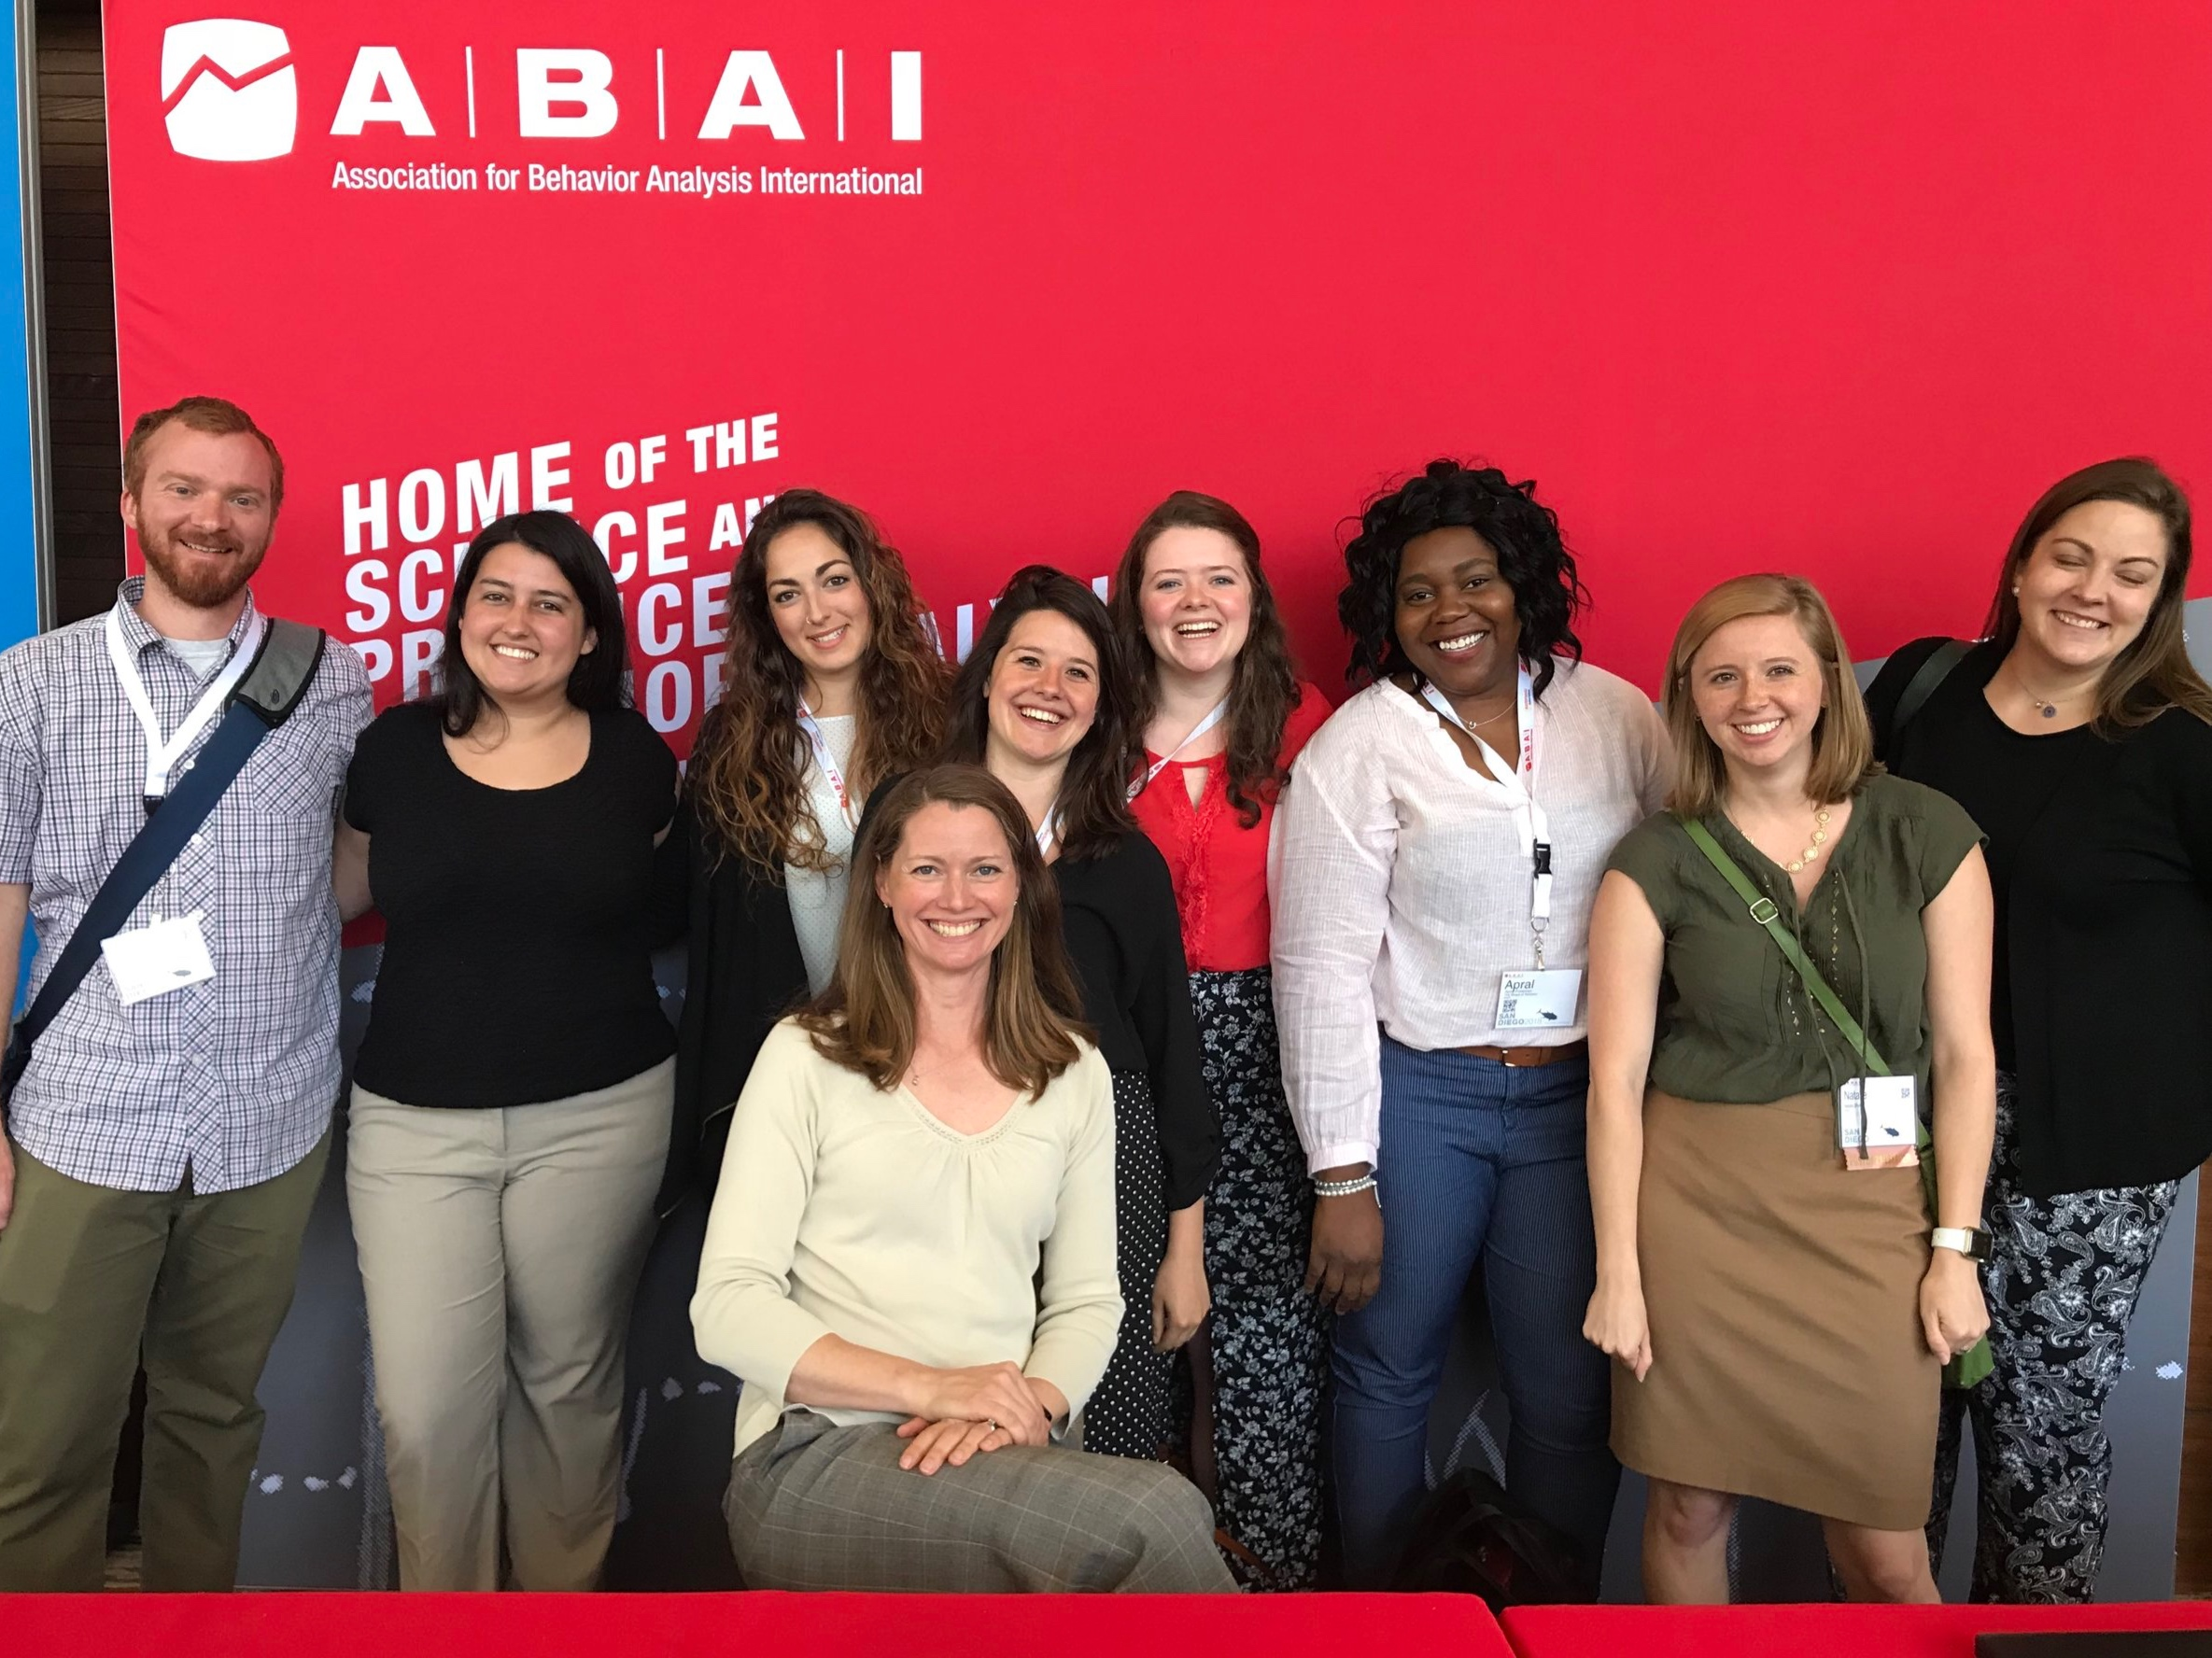 Current and former members of the lab get together at ABAI 2018. Left to right: Michael Mathews, Claudia Diaz-Salvat, Lucie Romano, Stephanie Jones, Catherine Williams, Apral Foreman, Natalie Shuler, and Aimee Giles (Claire, seated).